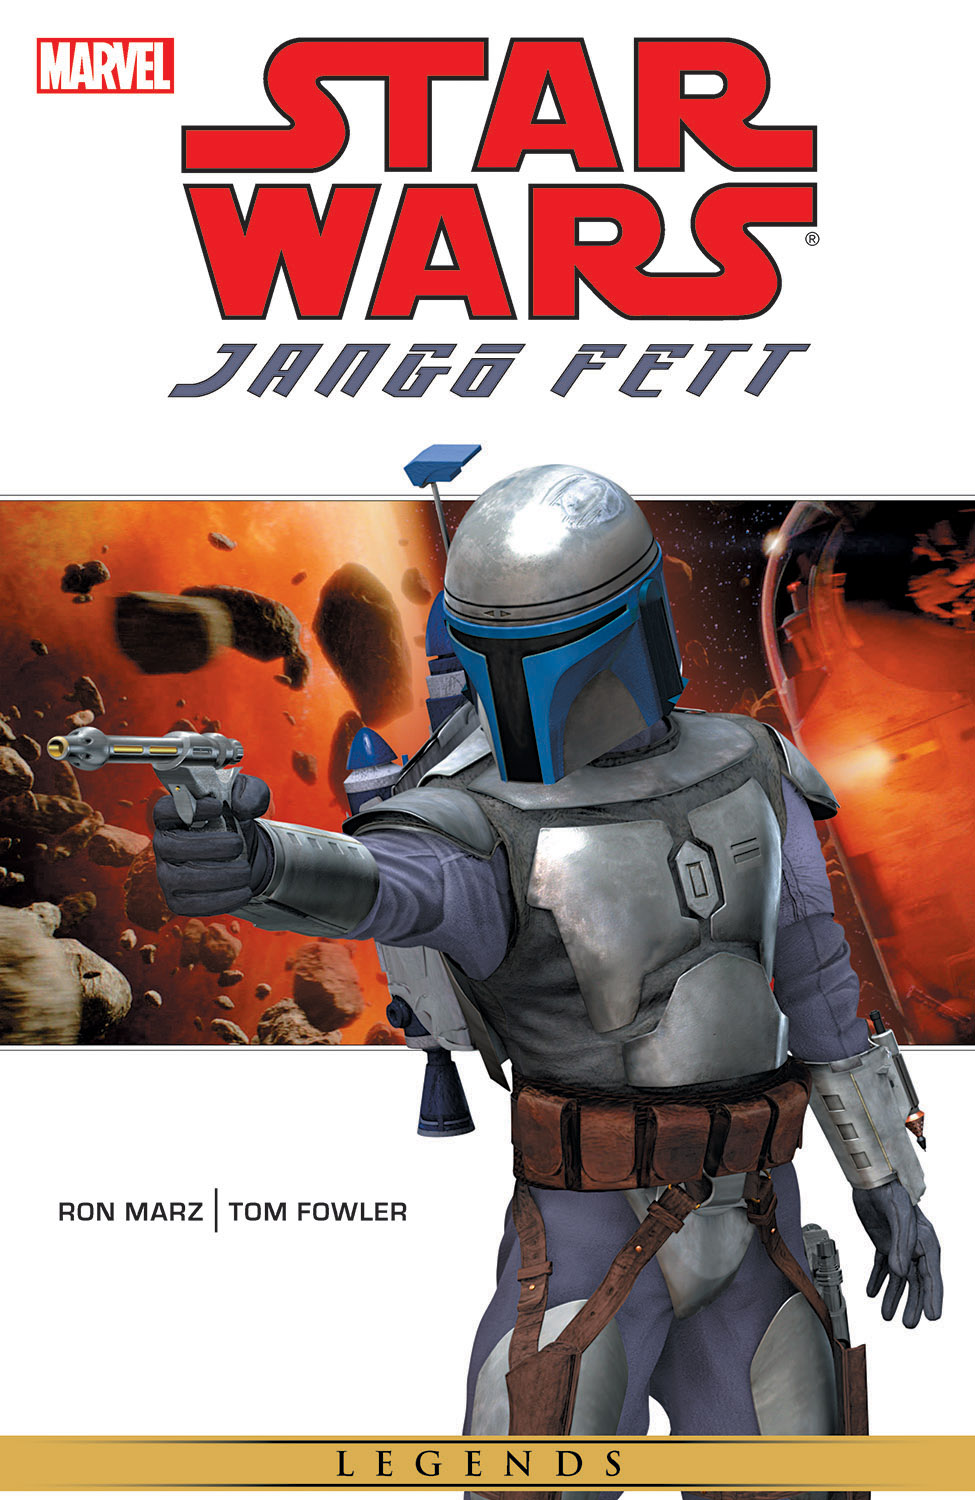 Star Wars: Jango Fett (2002) #1